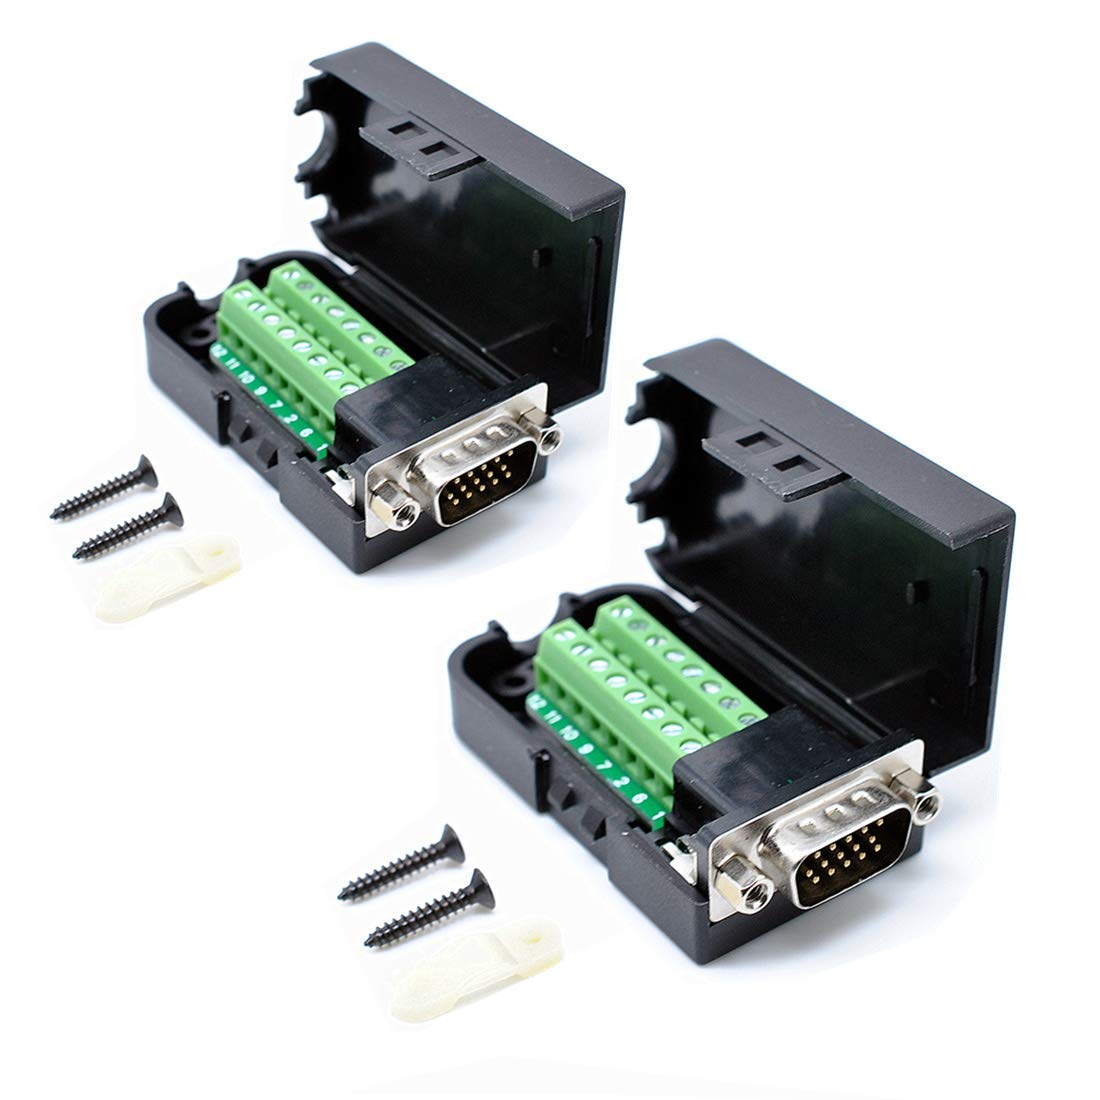 Oiyagai 2pcs DB15 3+9 D-SUB VGA Male 3Row 15Pin Connector Adaptor with NUT Terminal Breakout Board Free Welding